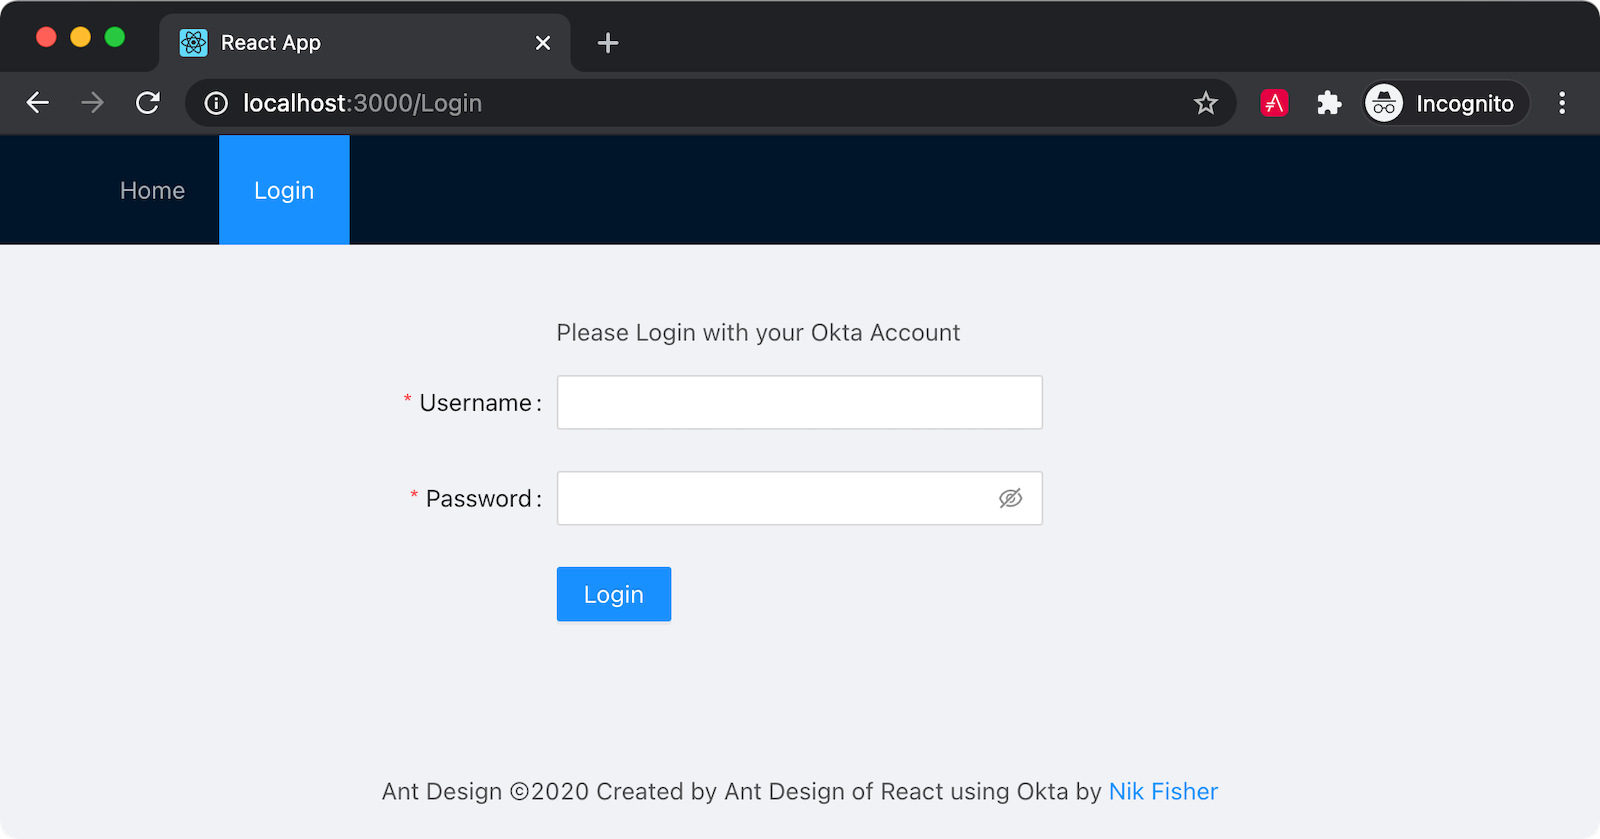 The login component